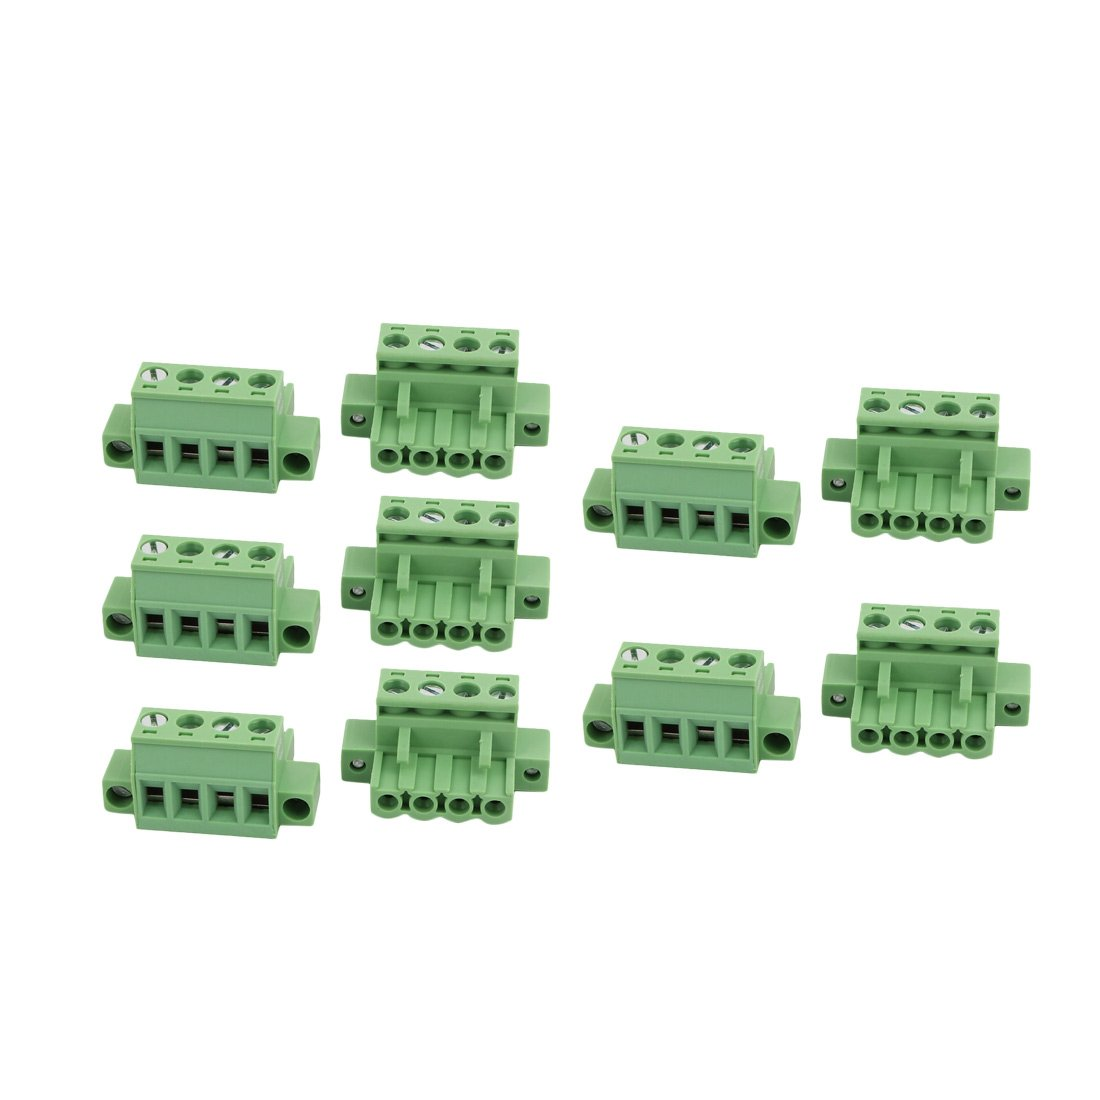 uxcell 10Pcs LC1M AC300V 15A 5.0mm Pitch 4P PCB Terminal Block Wire Connection